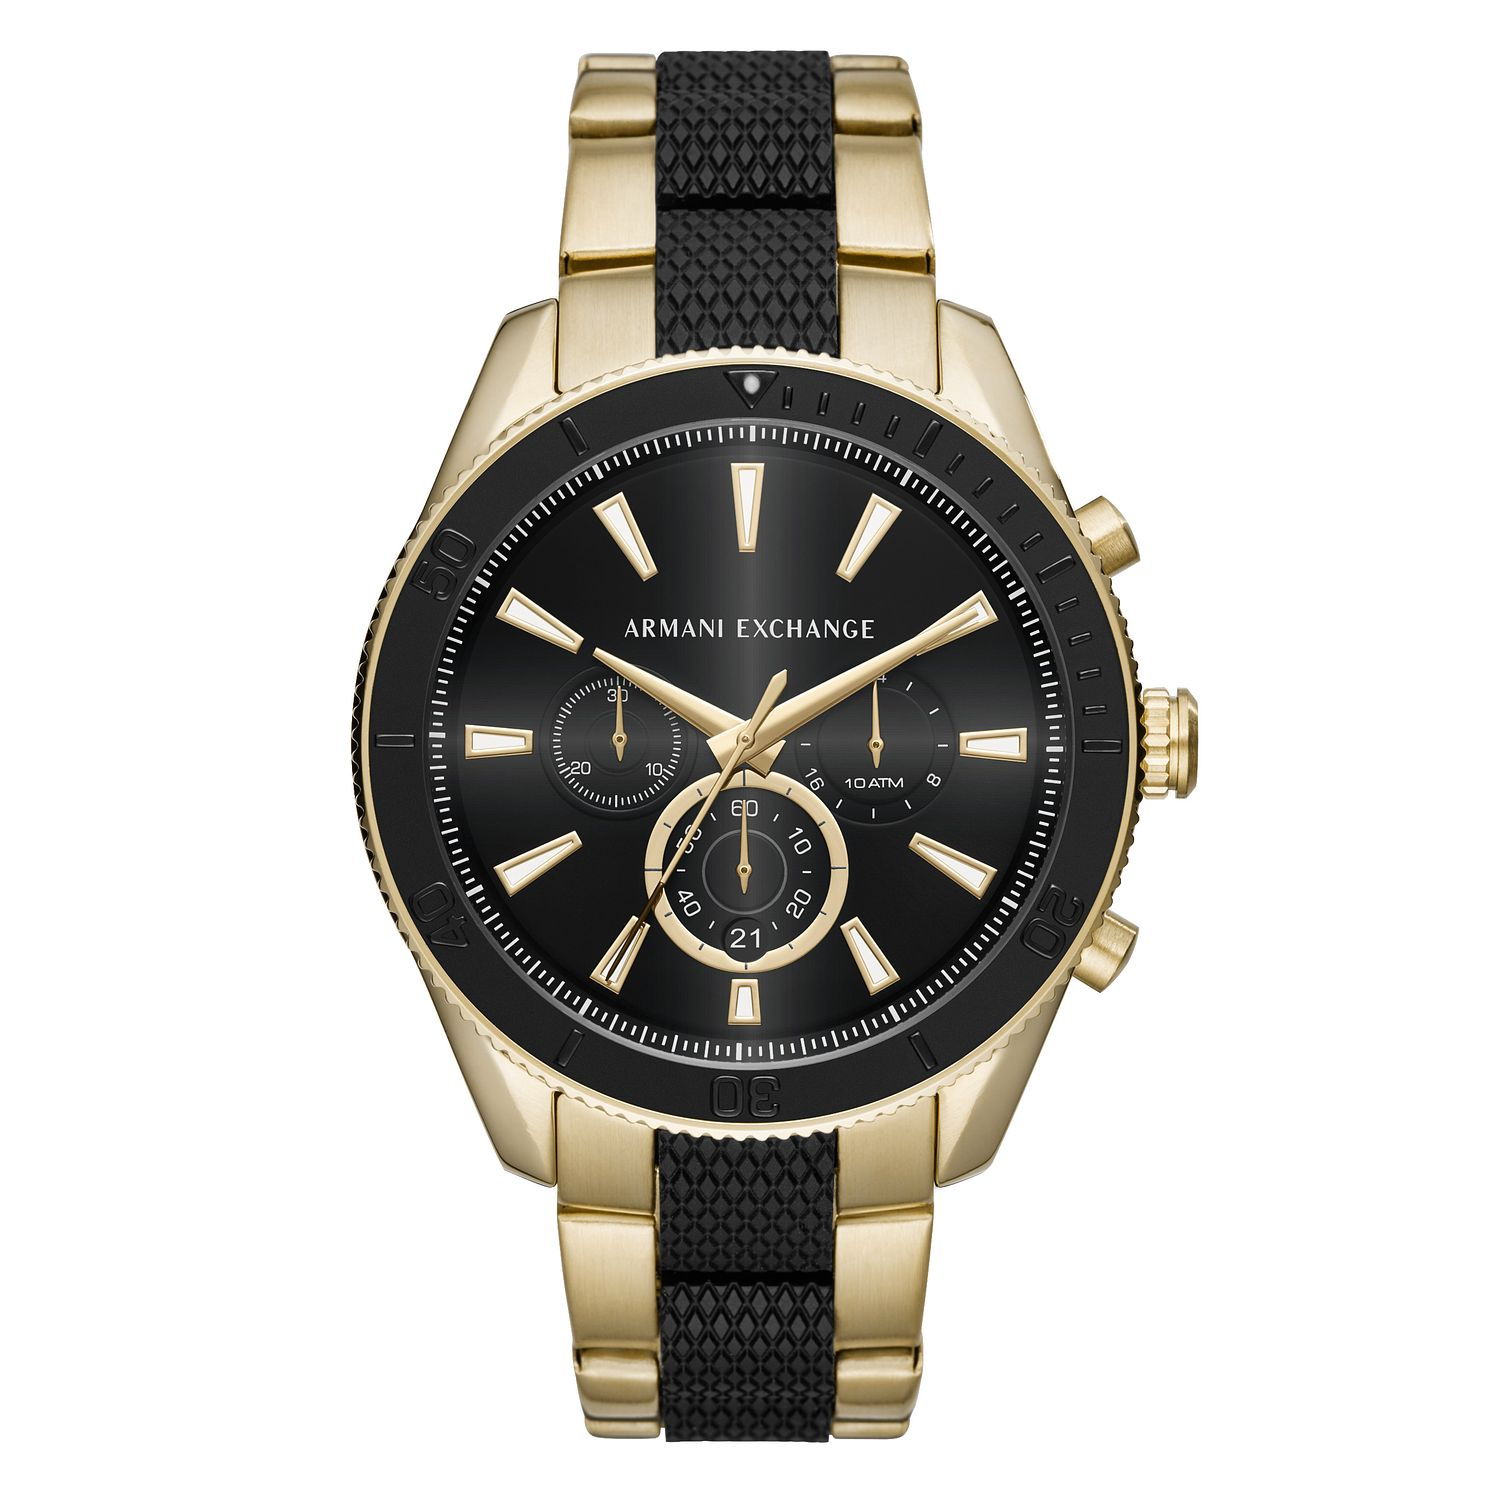 Armani Exchange Men's Stainless Steel Bracelet Watch - Product number 4172922